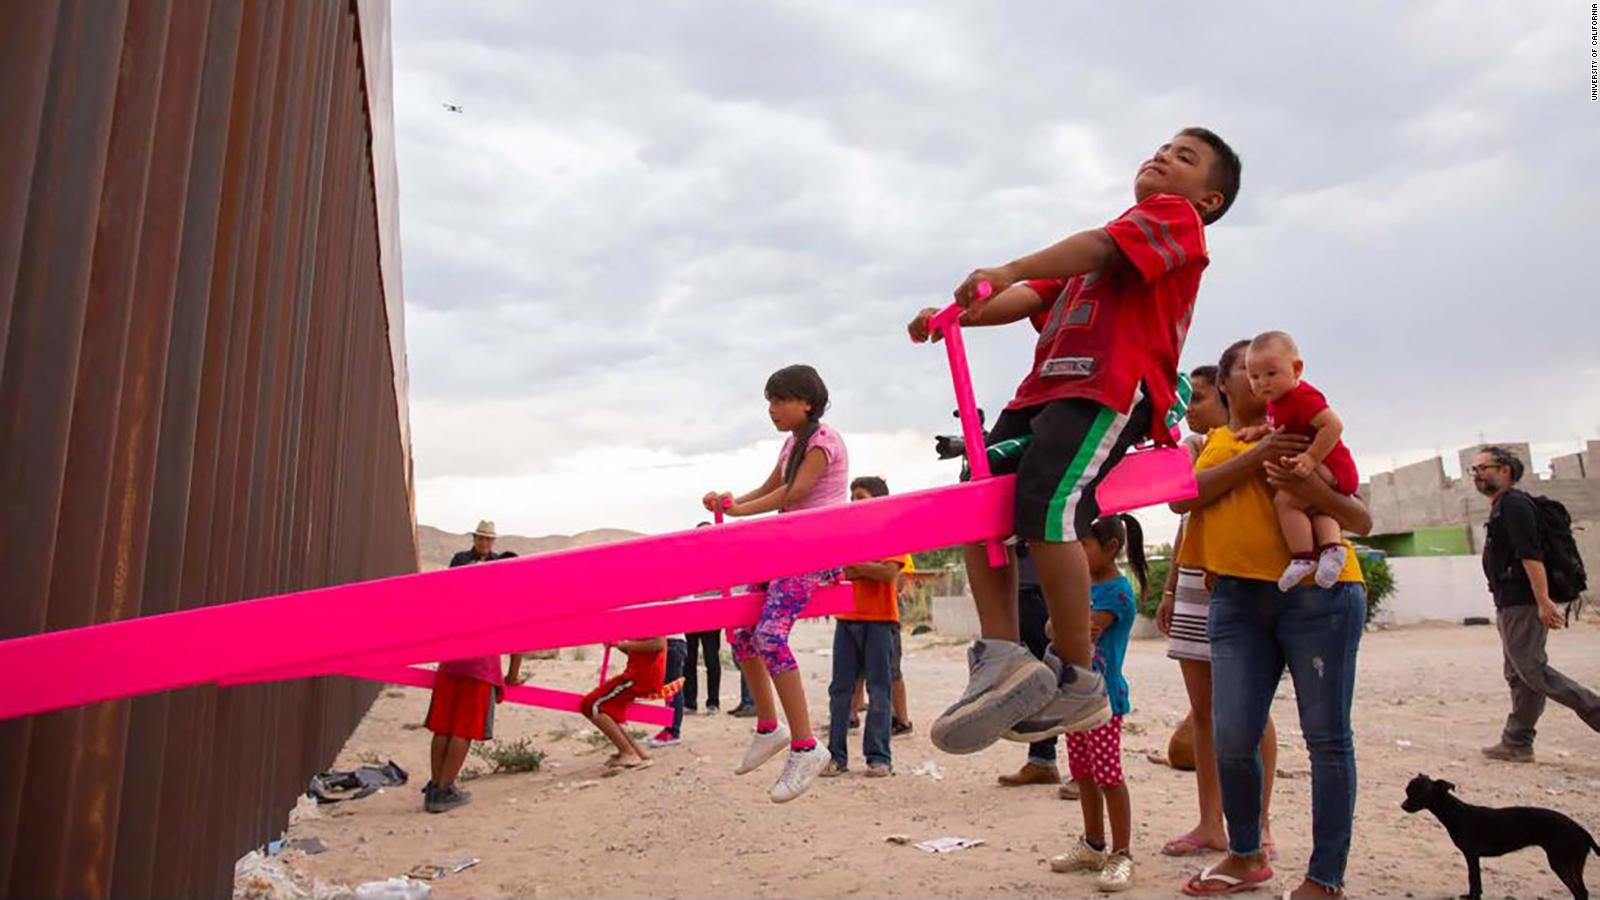 Children and Adults alike interacted with others across the border